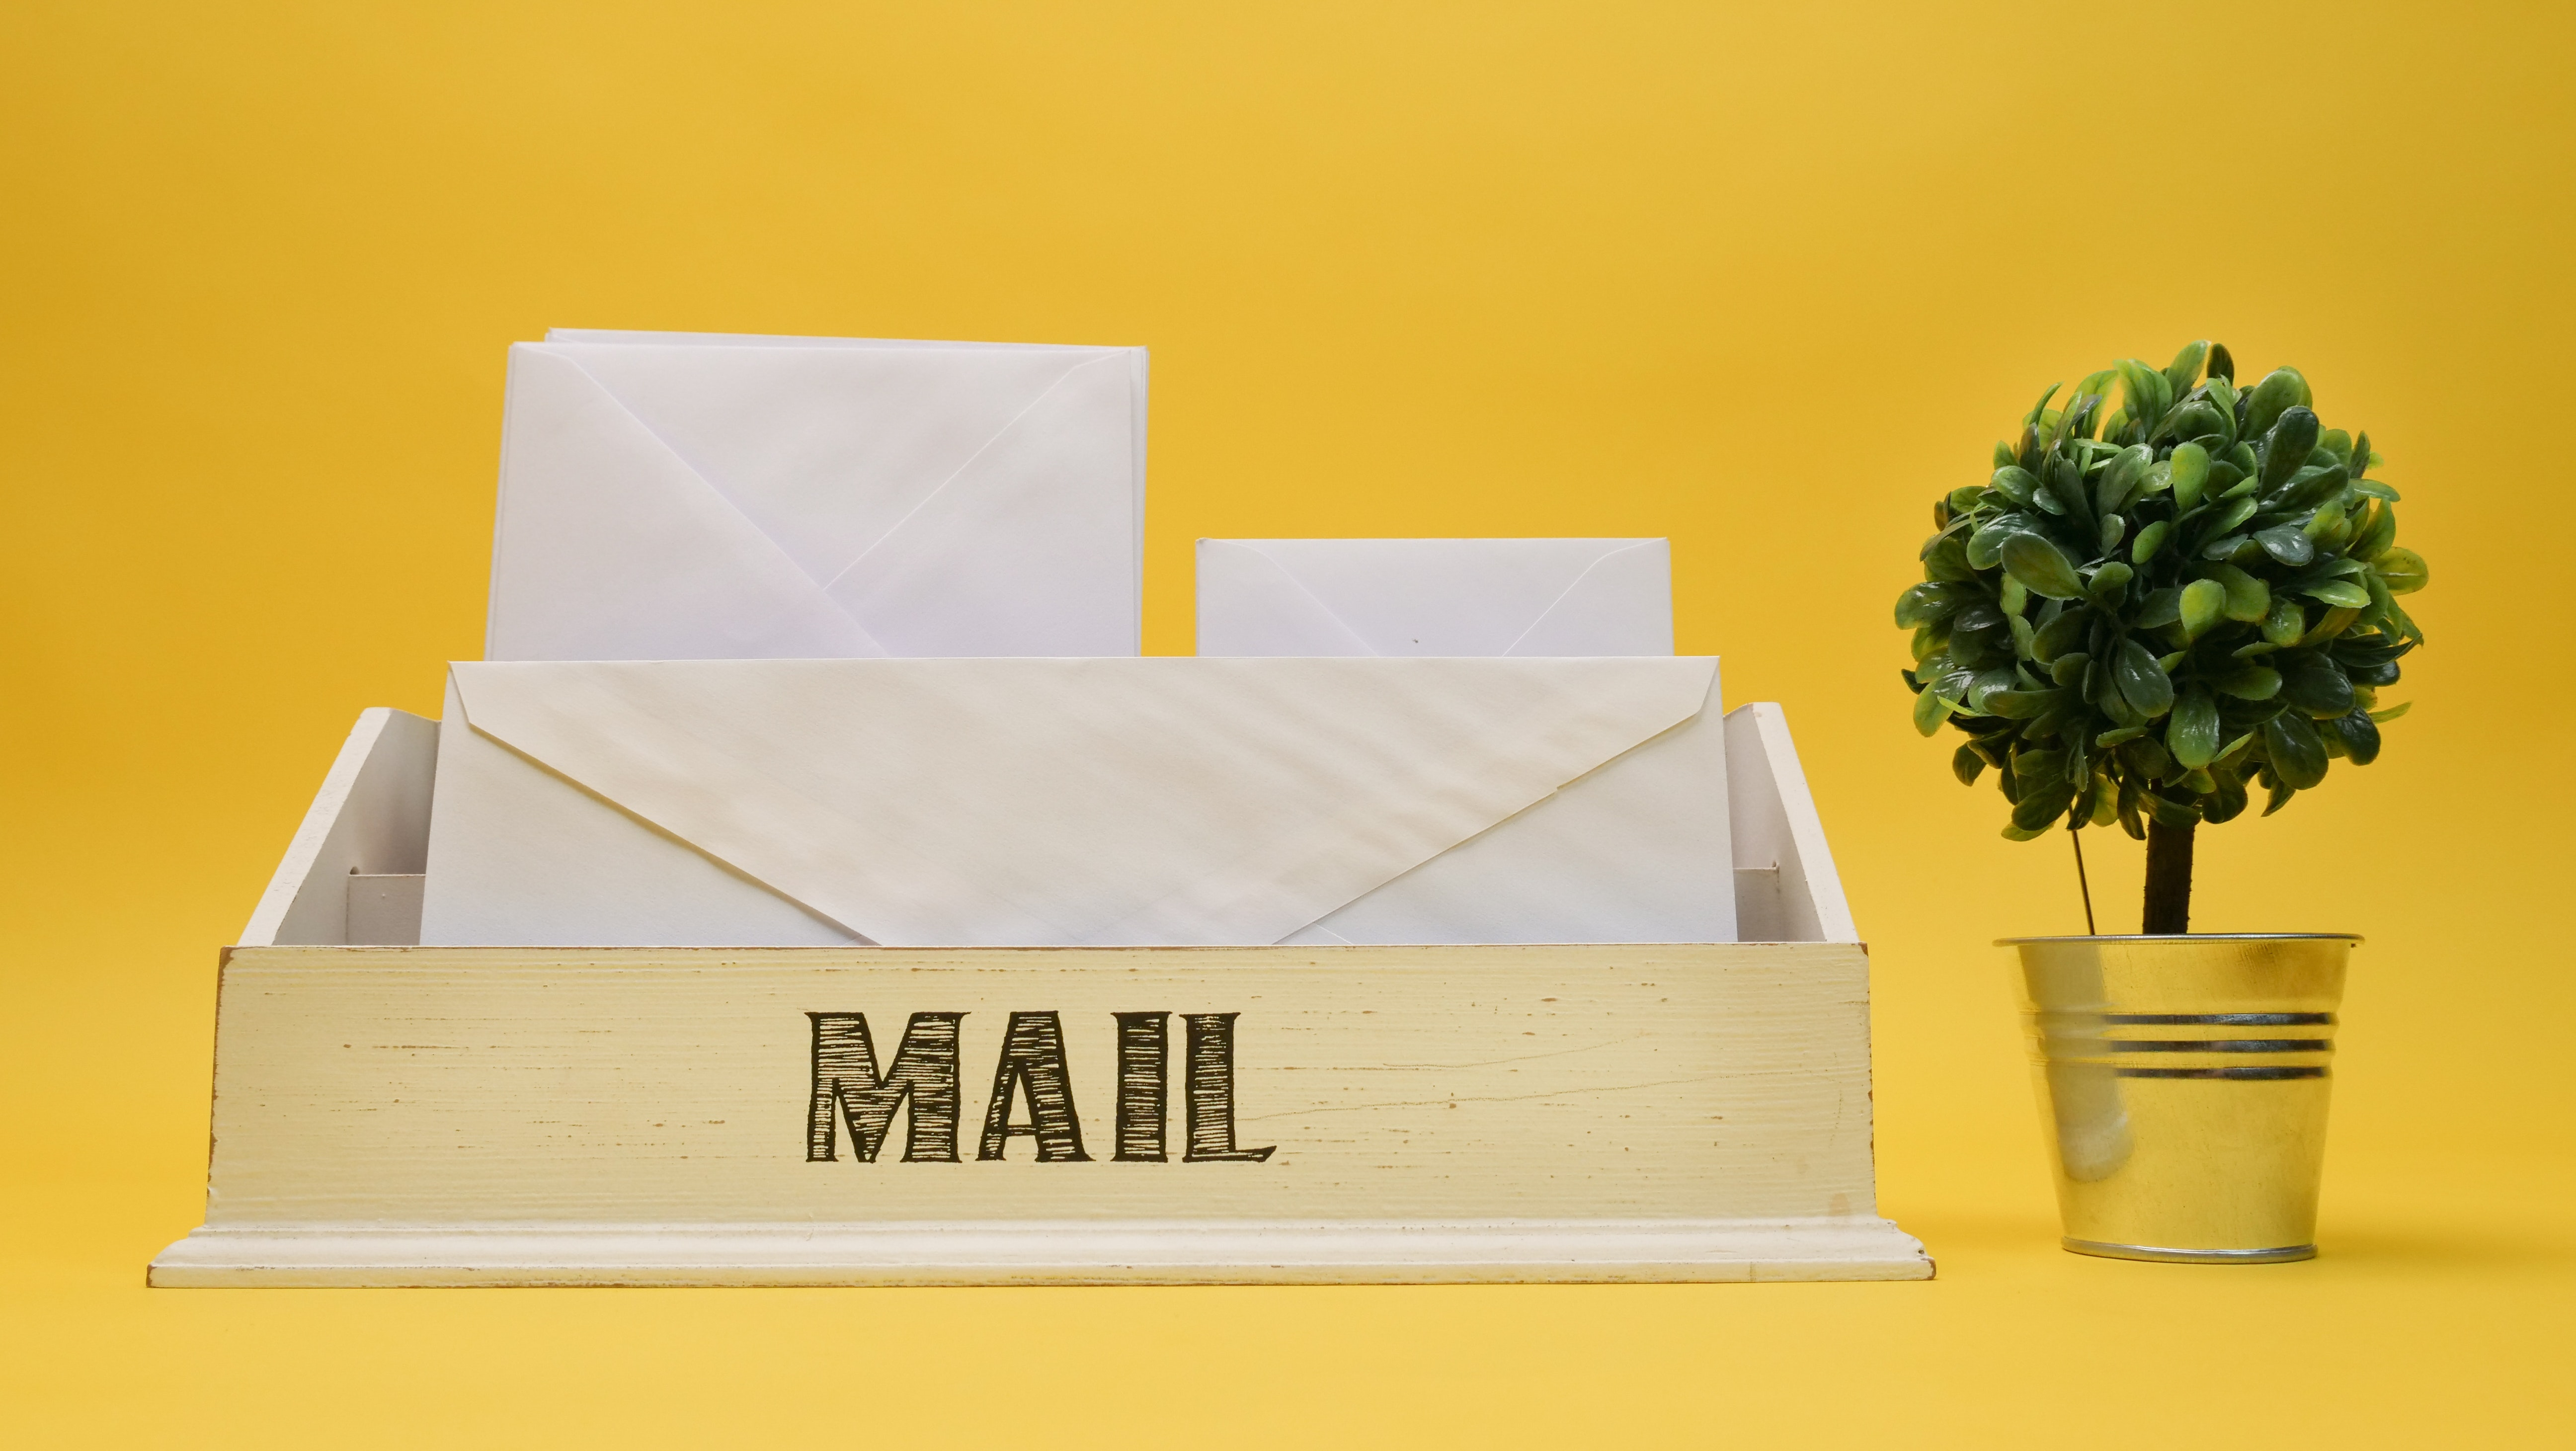 Mail inbox containing three envelopes next to a small potted plant against a yellow background